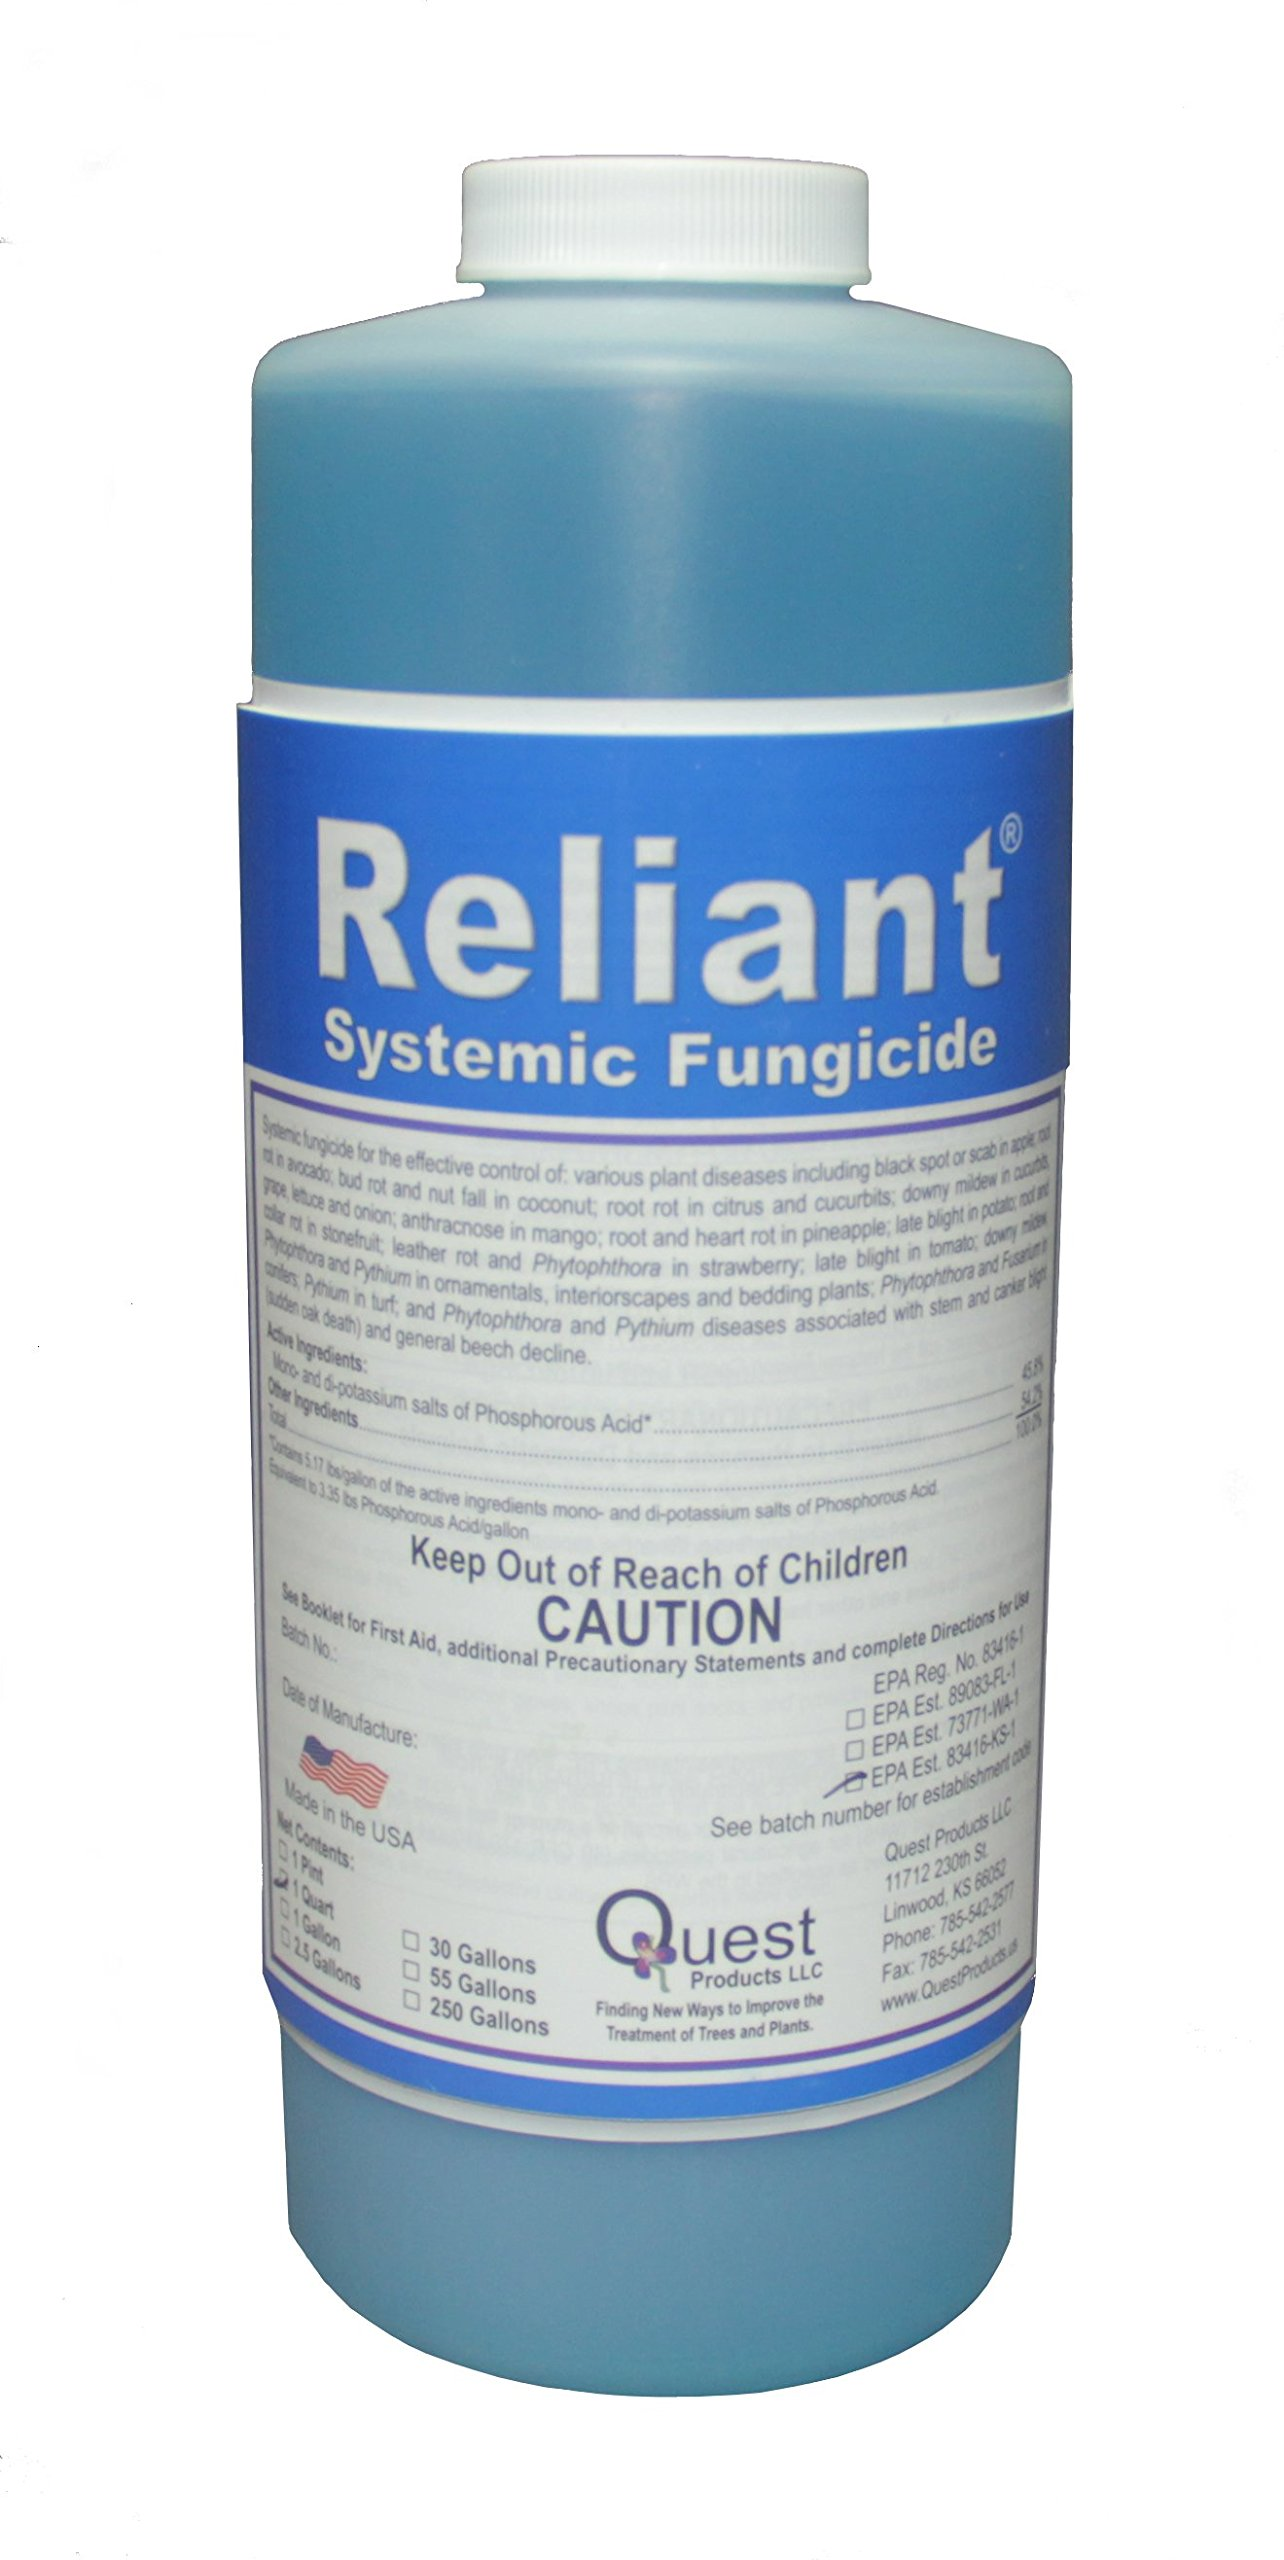 Reliant Systemic Fungicide (Agri-Fos/Garden Phos) 1 Quart/32oz by Quest